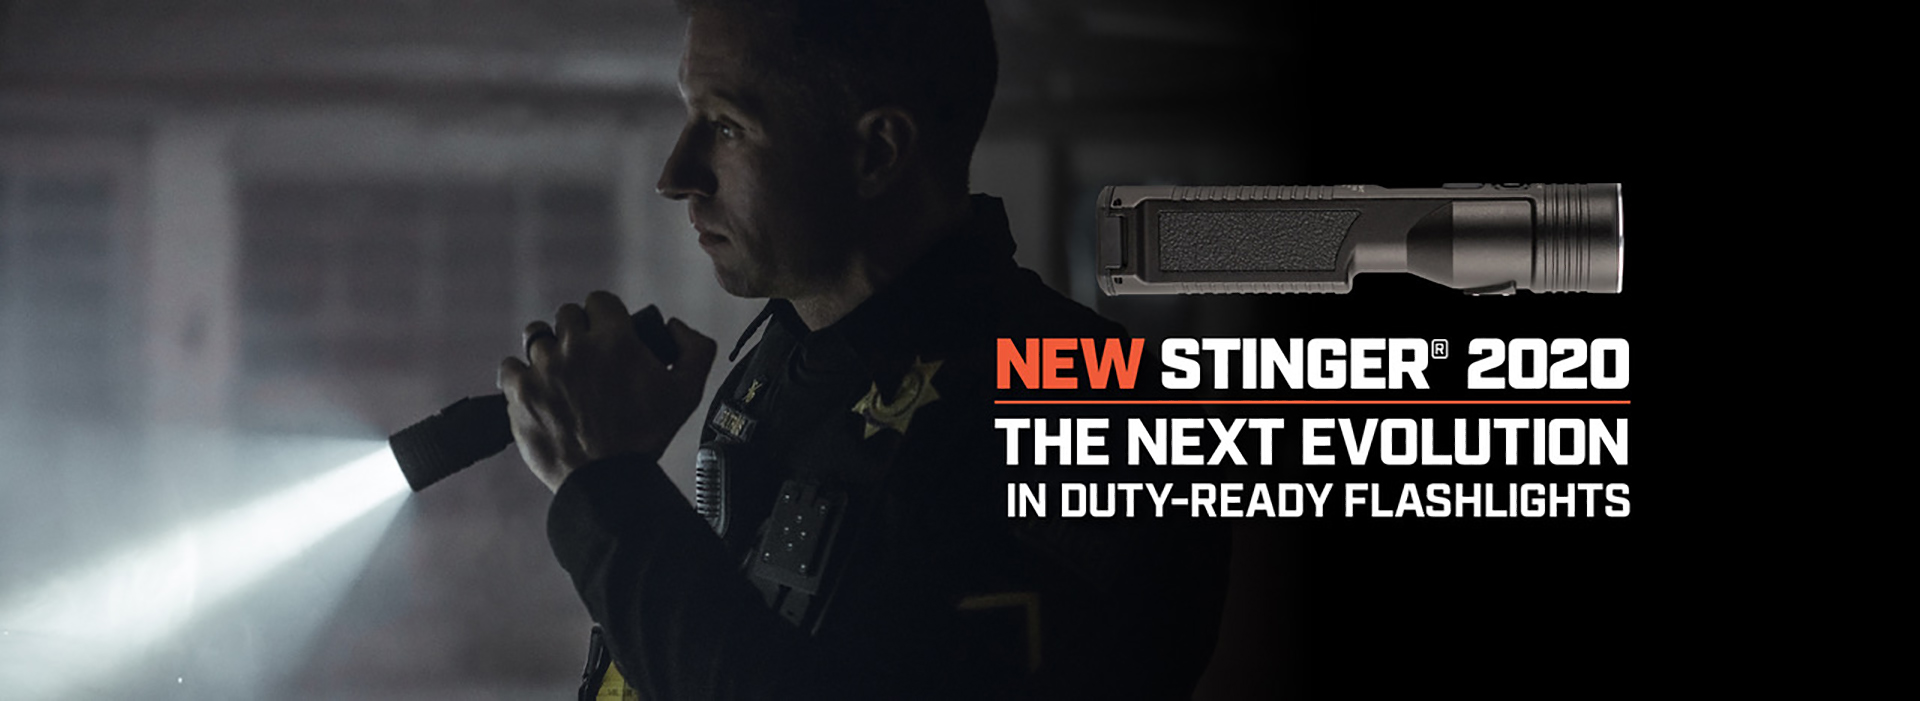 NEW STINGER® 2020 :: THE NEXT EVOLUTION IN DUTY-READY FLASHLIGHTS